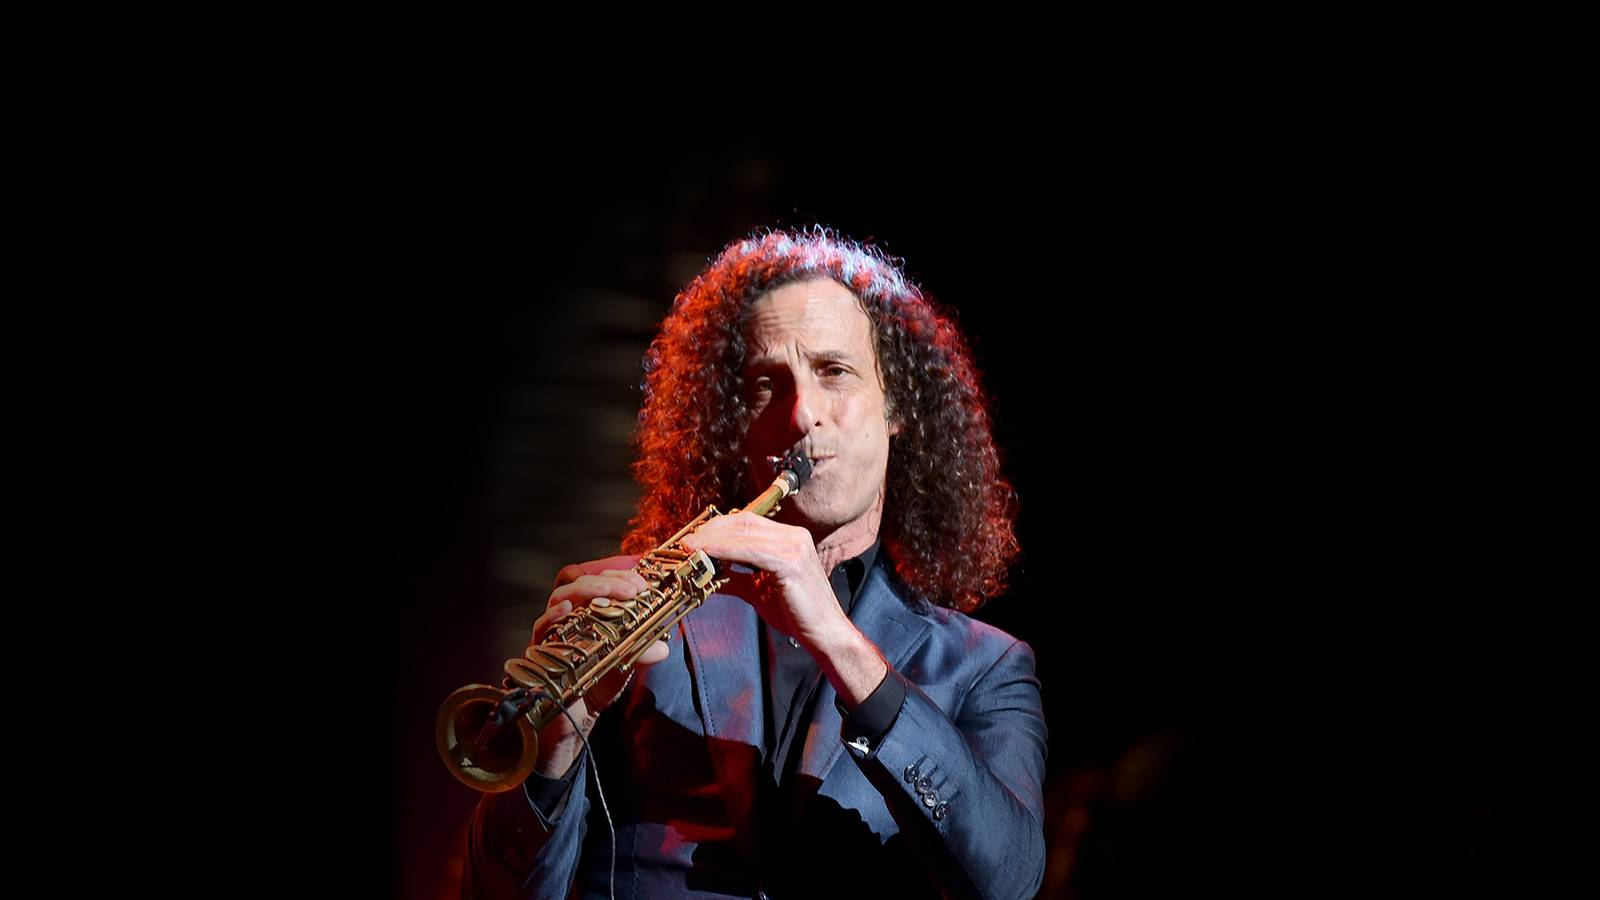 Kenny G (Rescheduled from 9/5/2019) (Rescheduled from 3/27)